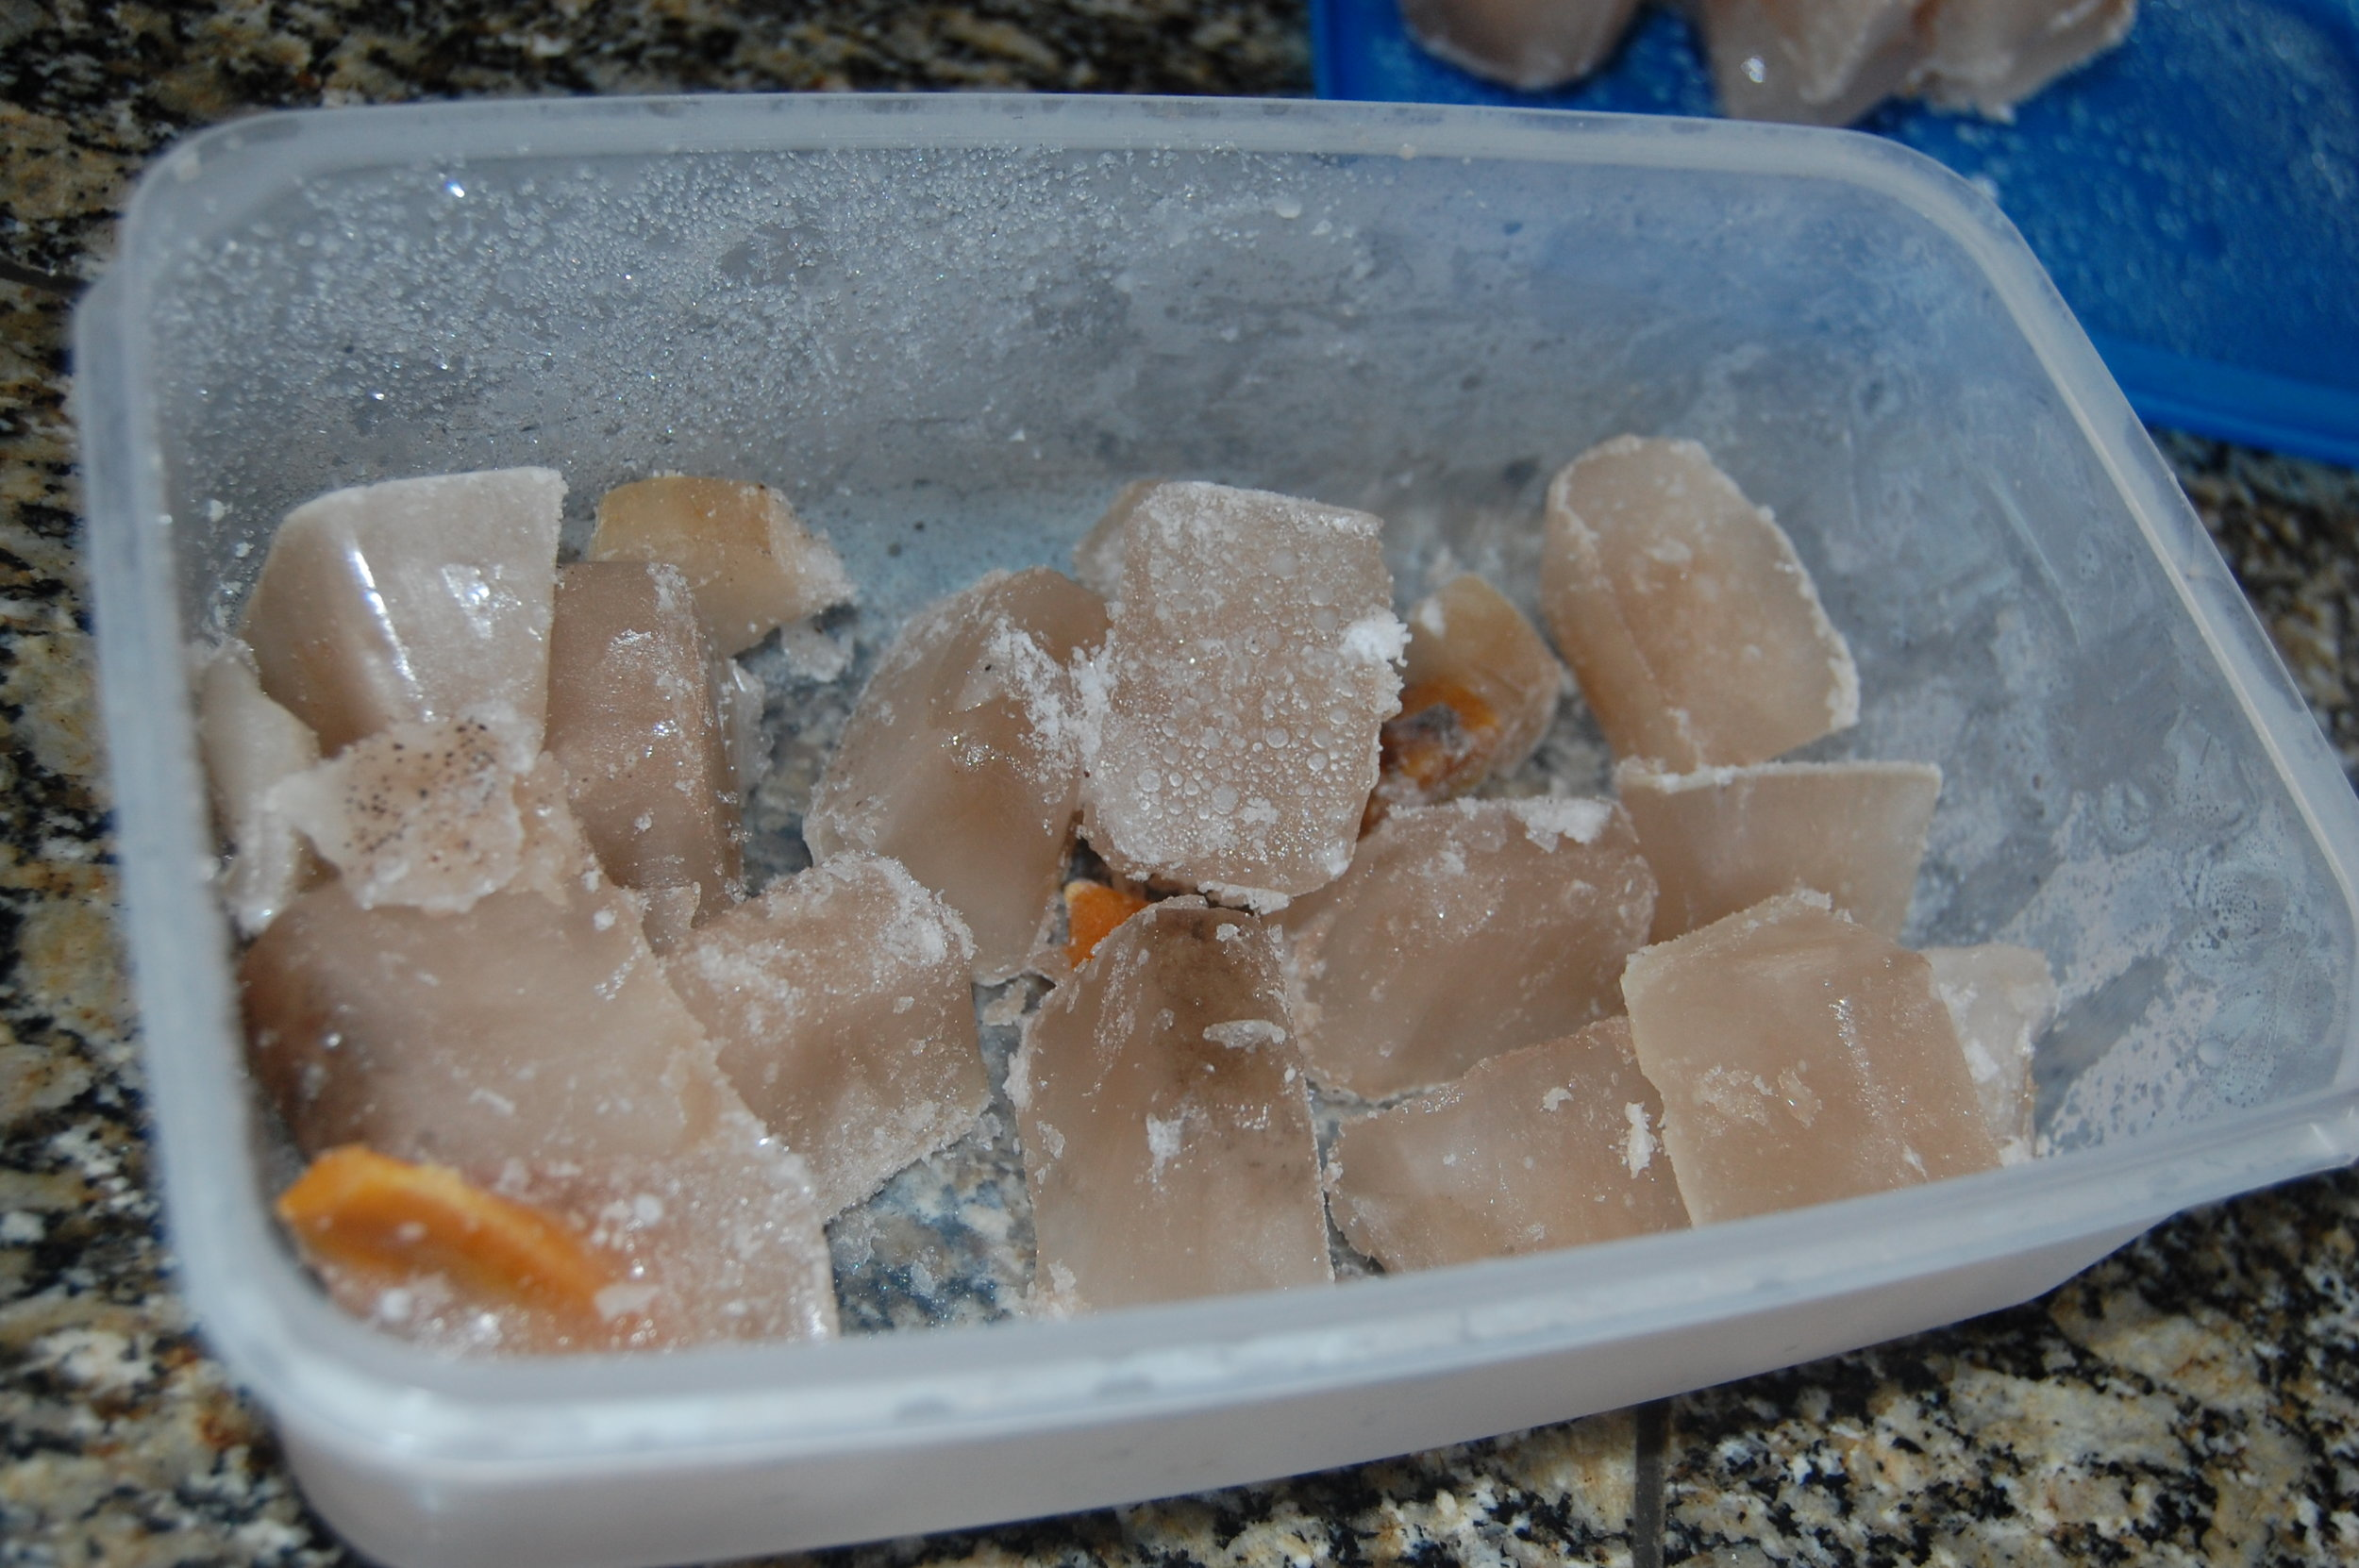 Release the cubes from the tray and store in stackable containers in your freezer. Take out only what you need for rapid thawing.